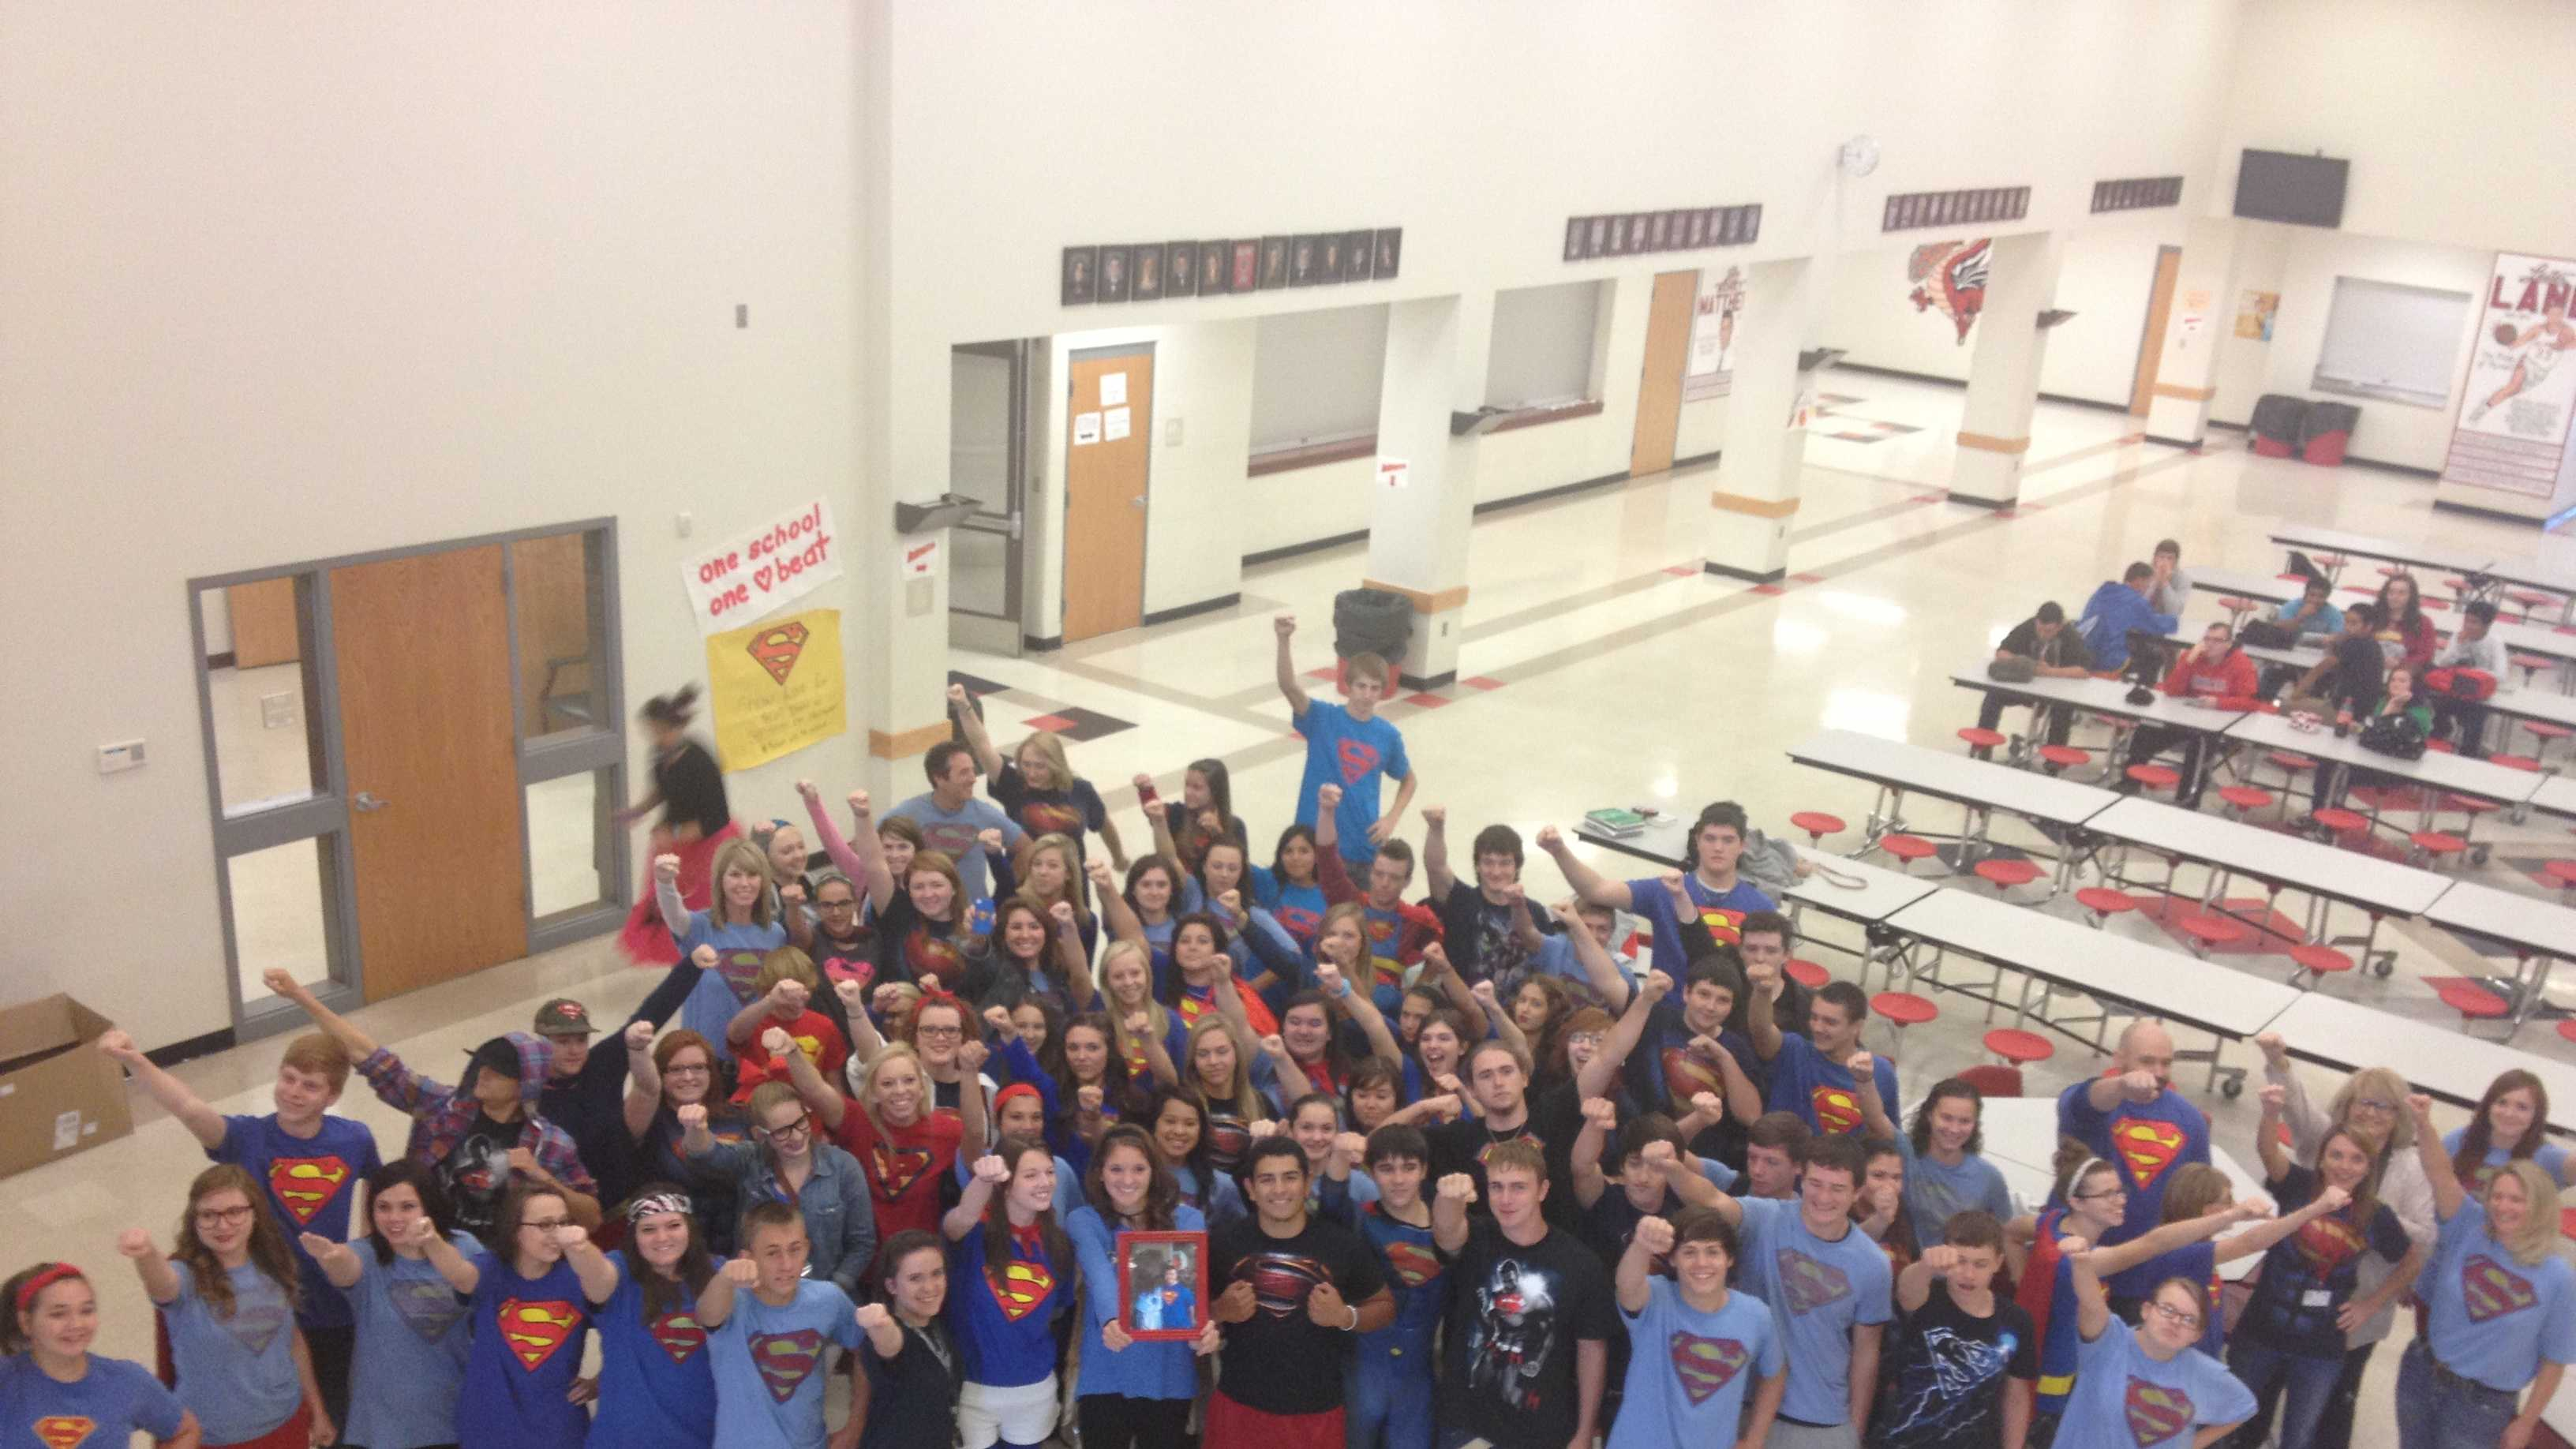 Purcell High School shows strength for student diagnosed with lukemia